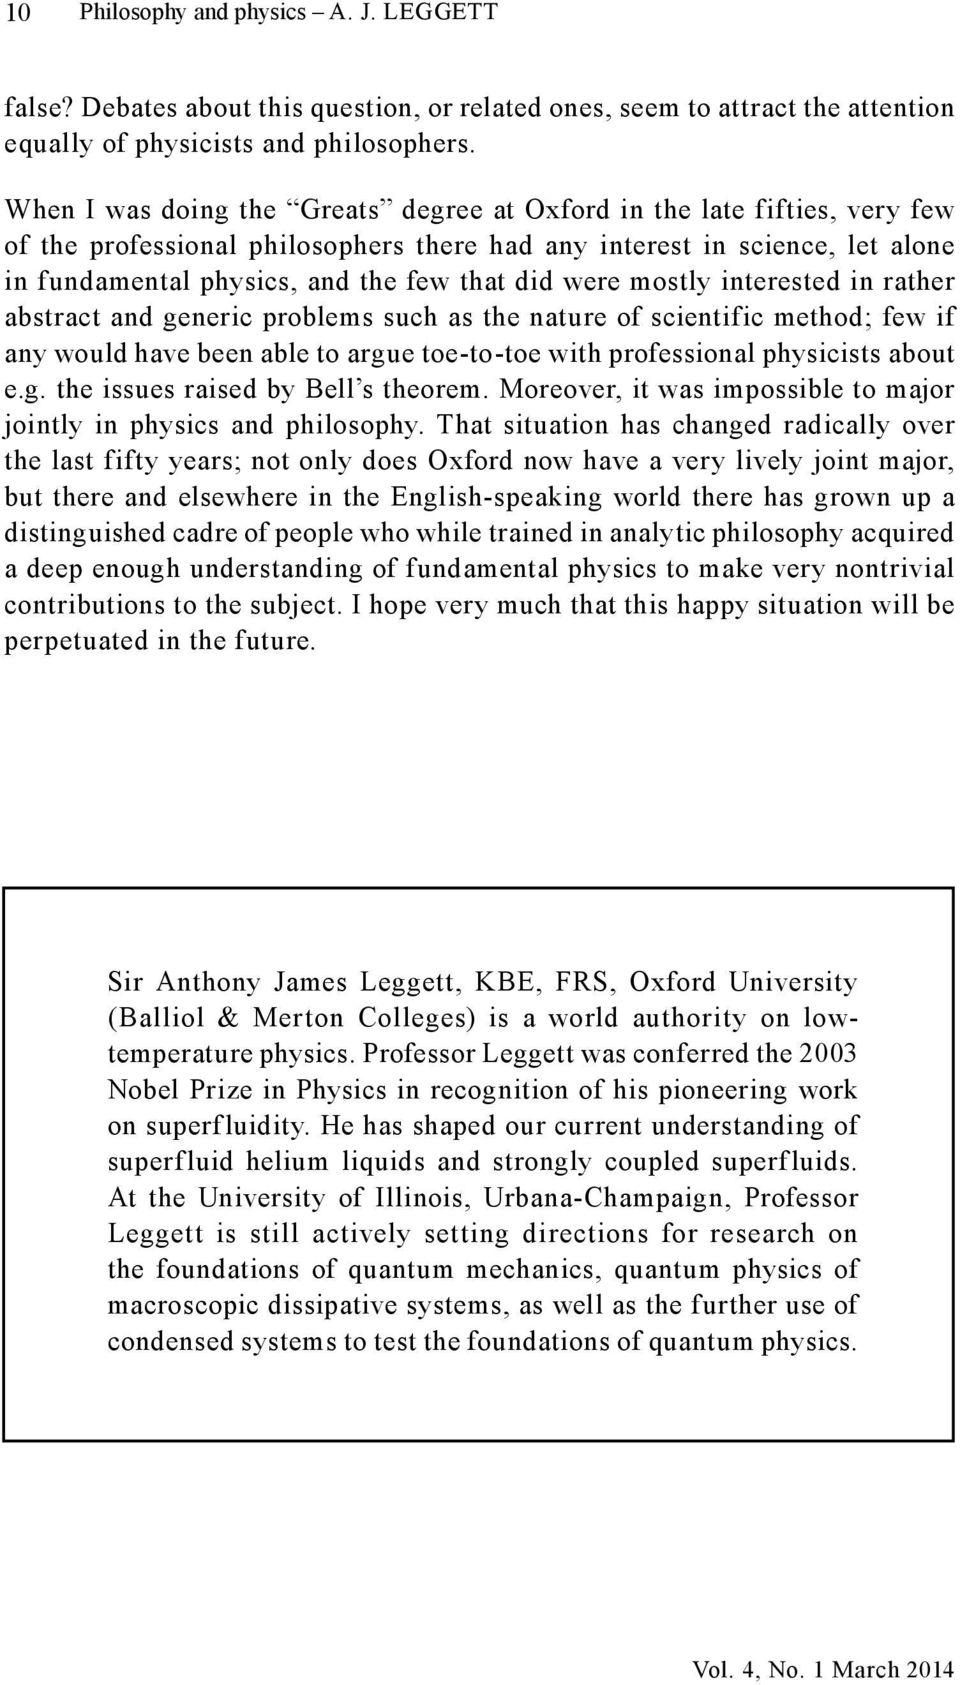 were mostly interested in rather abstract and generic problems such as the nature of scientific method; few if any would have been able to argue toe-to-toe with professional physicists about e.g. the issues raised by Bell s theorem.